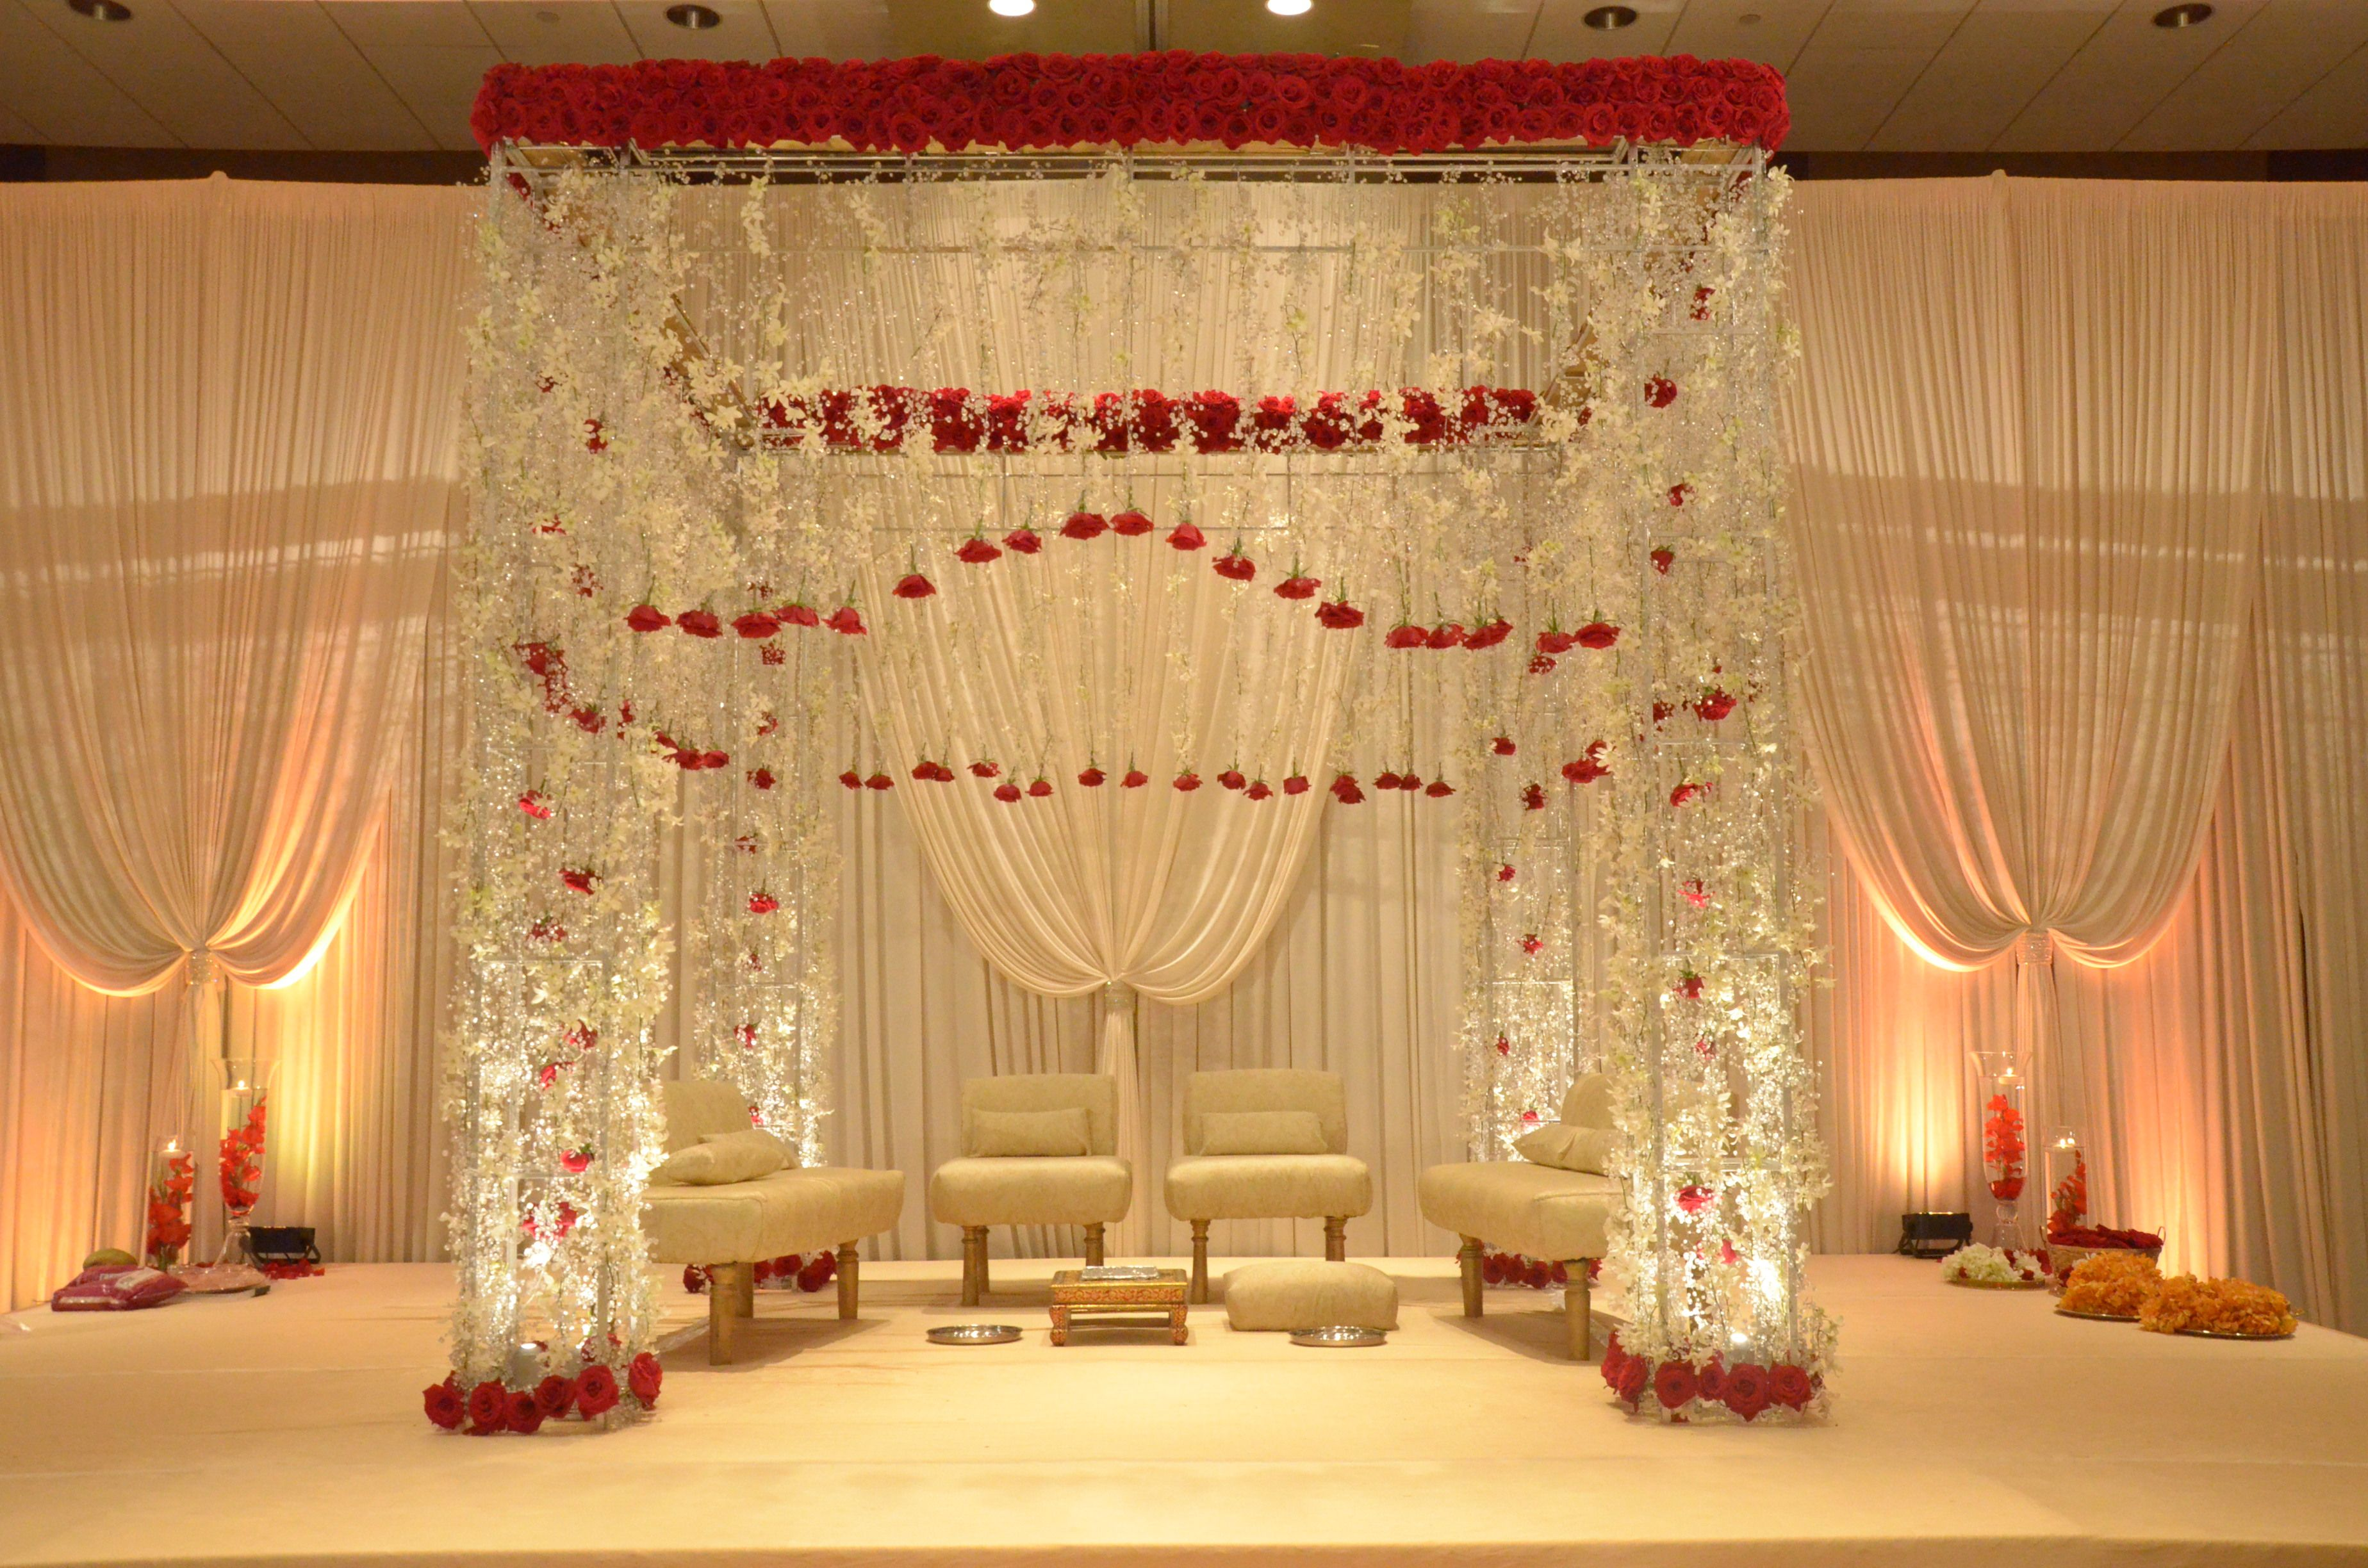 Crystal Mandap Design With Hanging Red Roses The Perfect Wedding